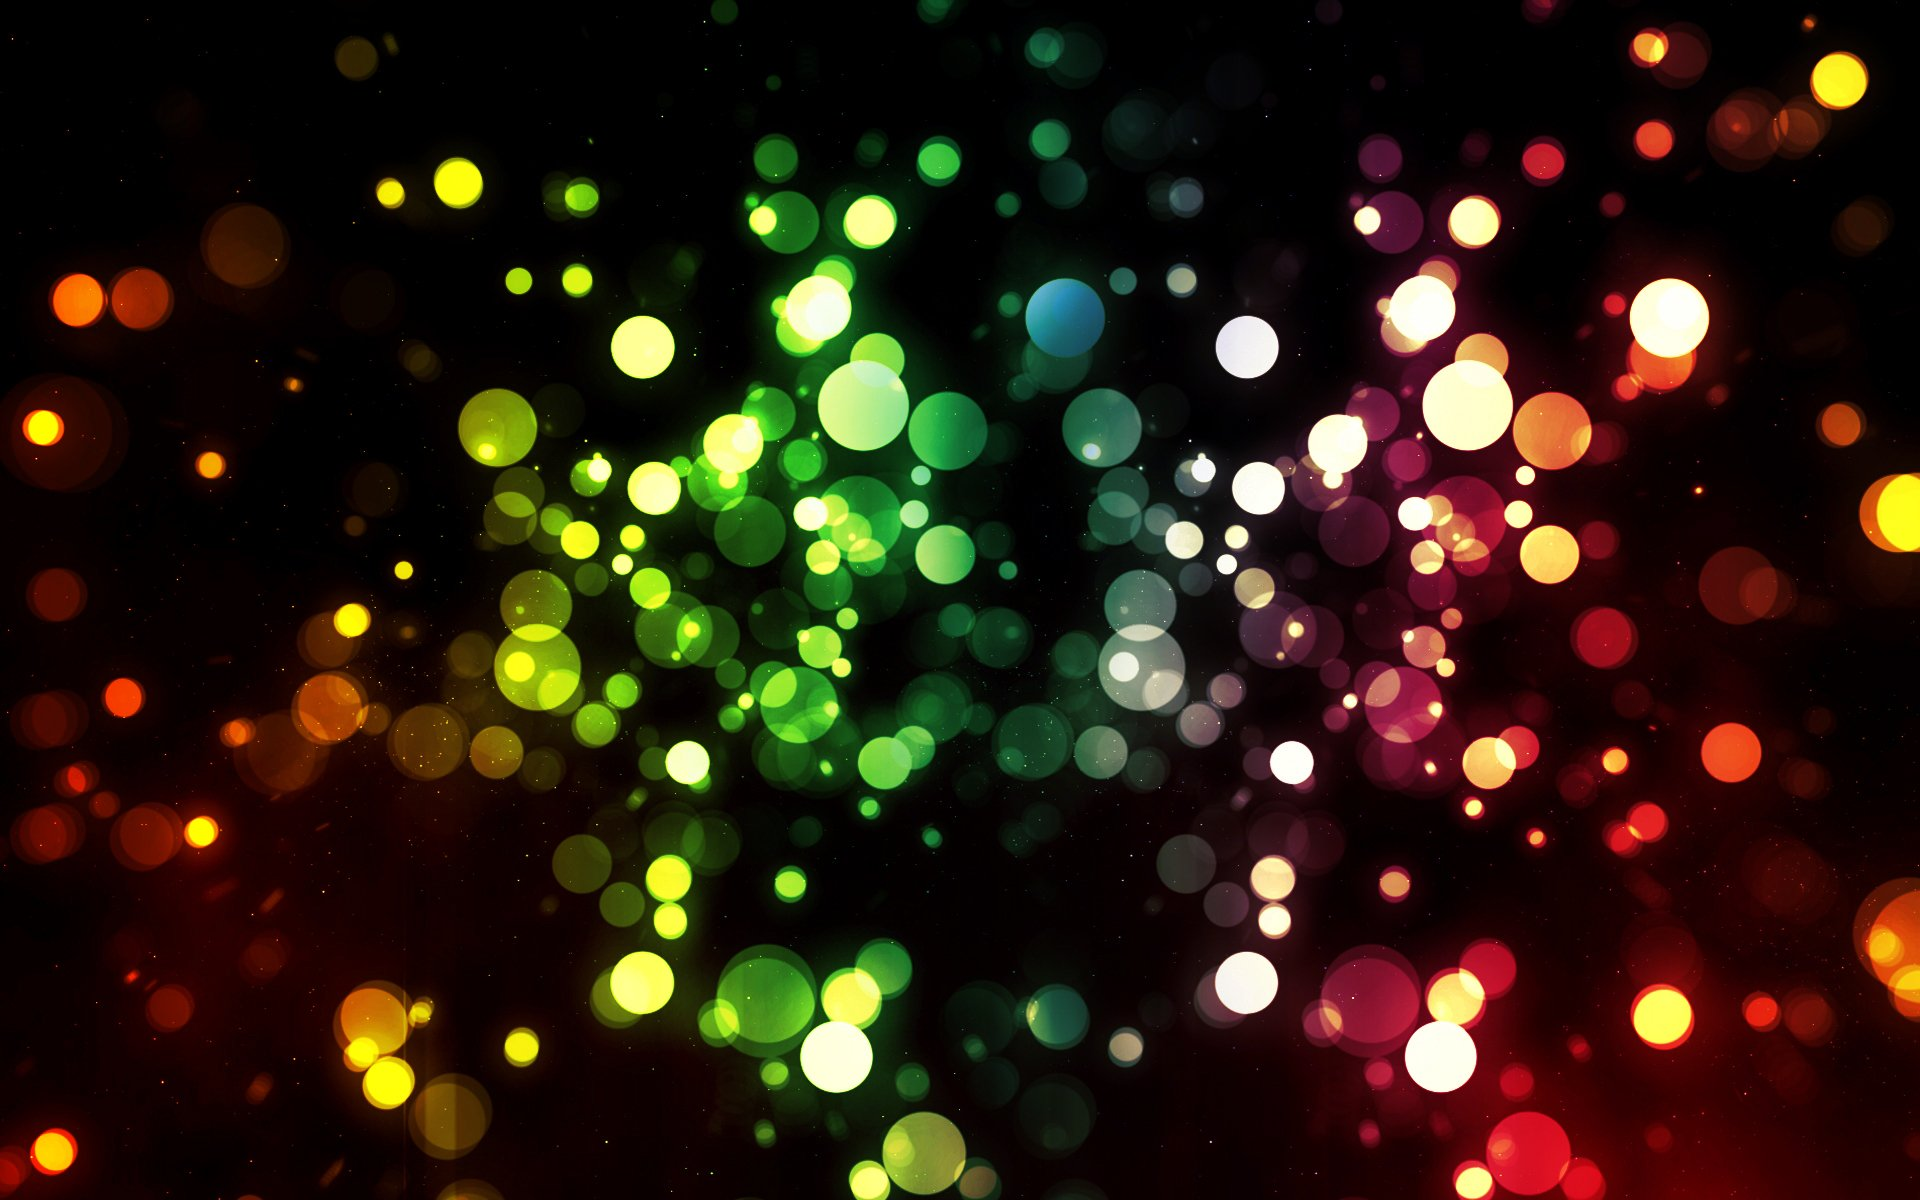 Artistic - Bokeh  Wallpaper